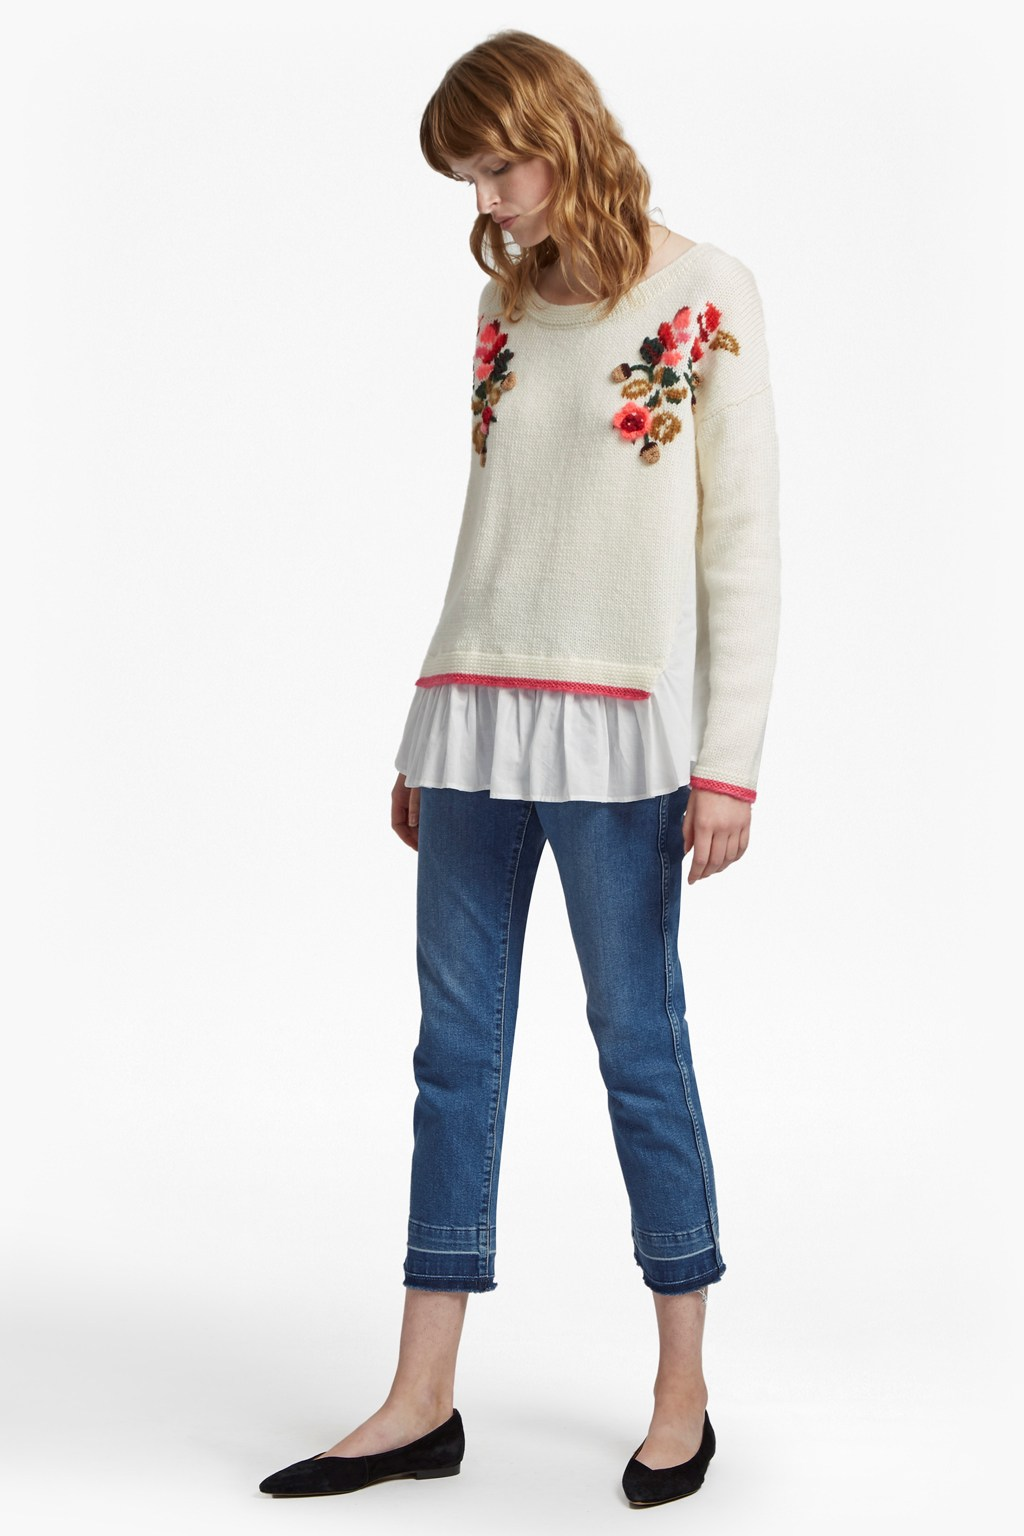 d51abd33d7981c ... Vienna Knit Embroidered Jumper Sale French Connection Usa online  retailer 39f46 1b624 ...